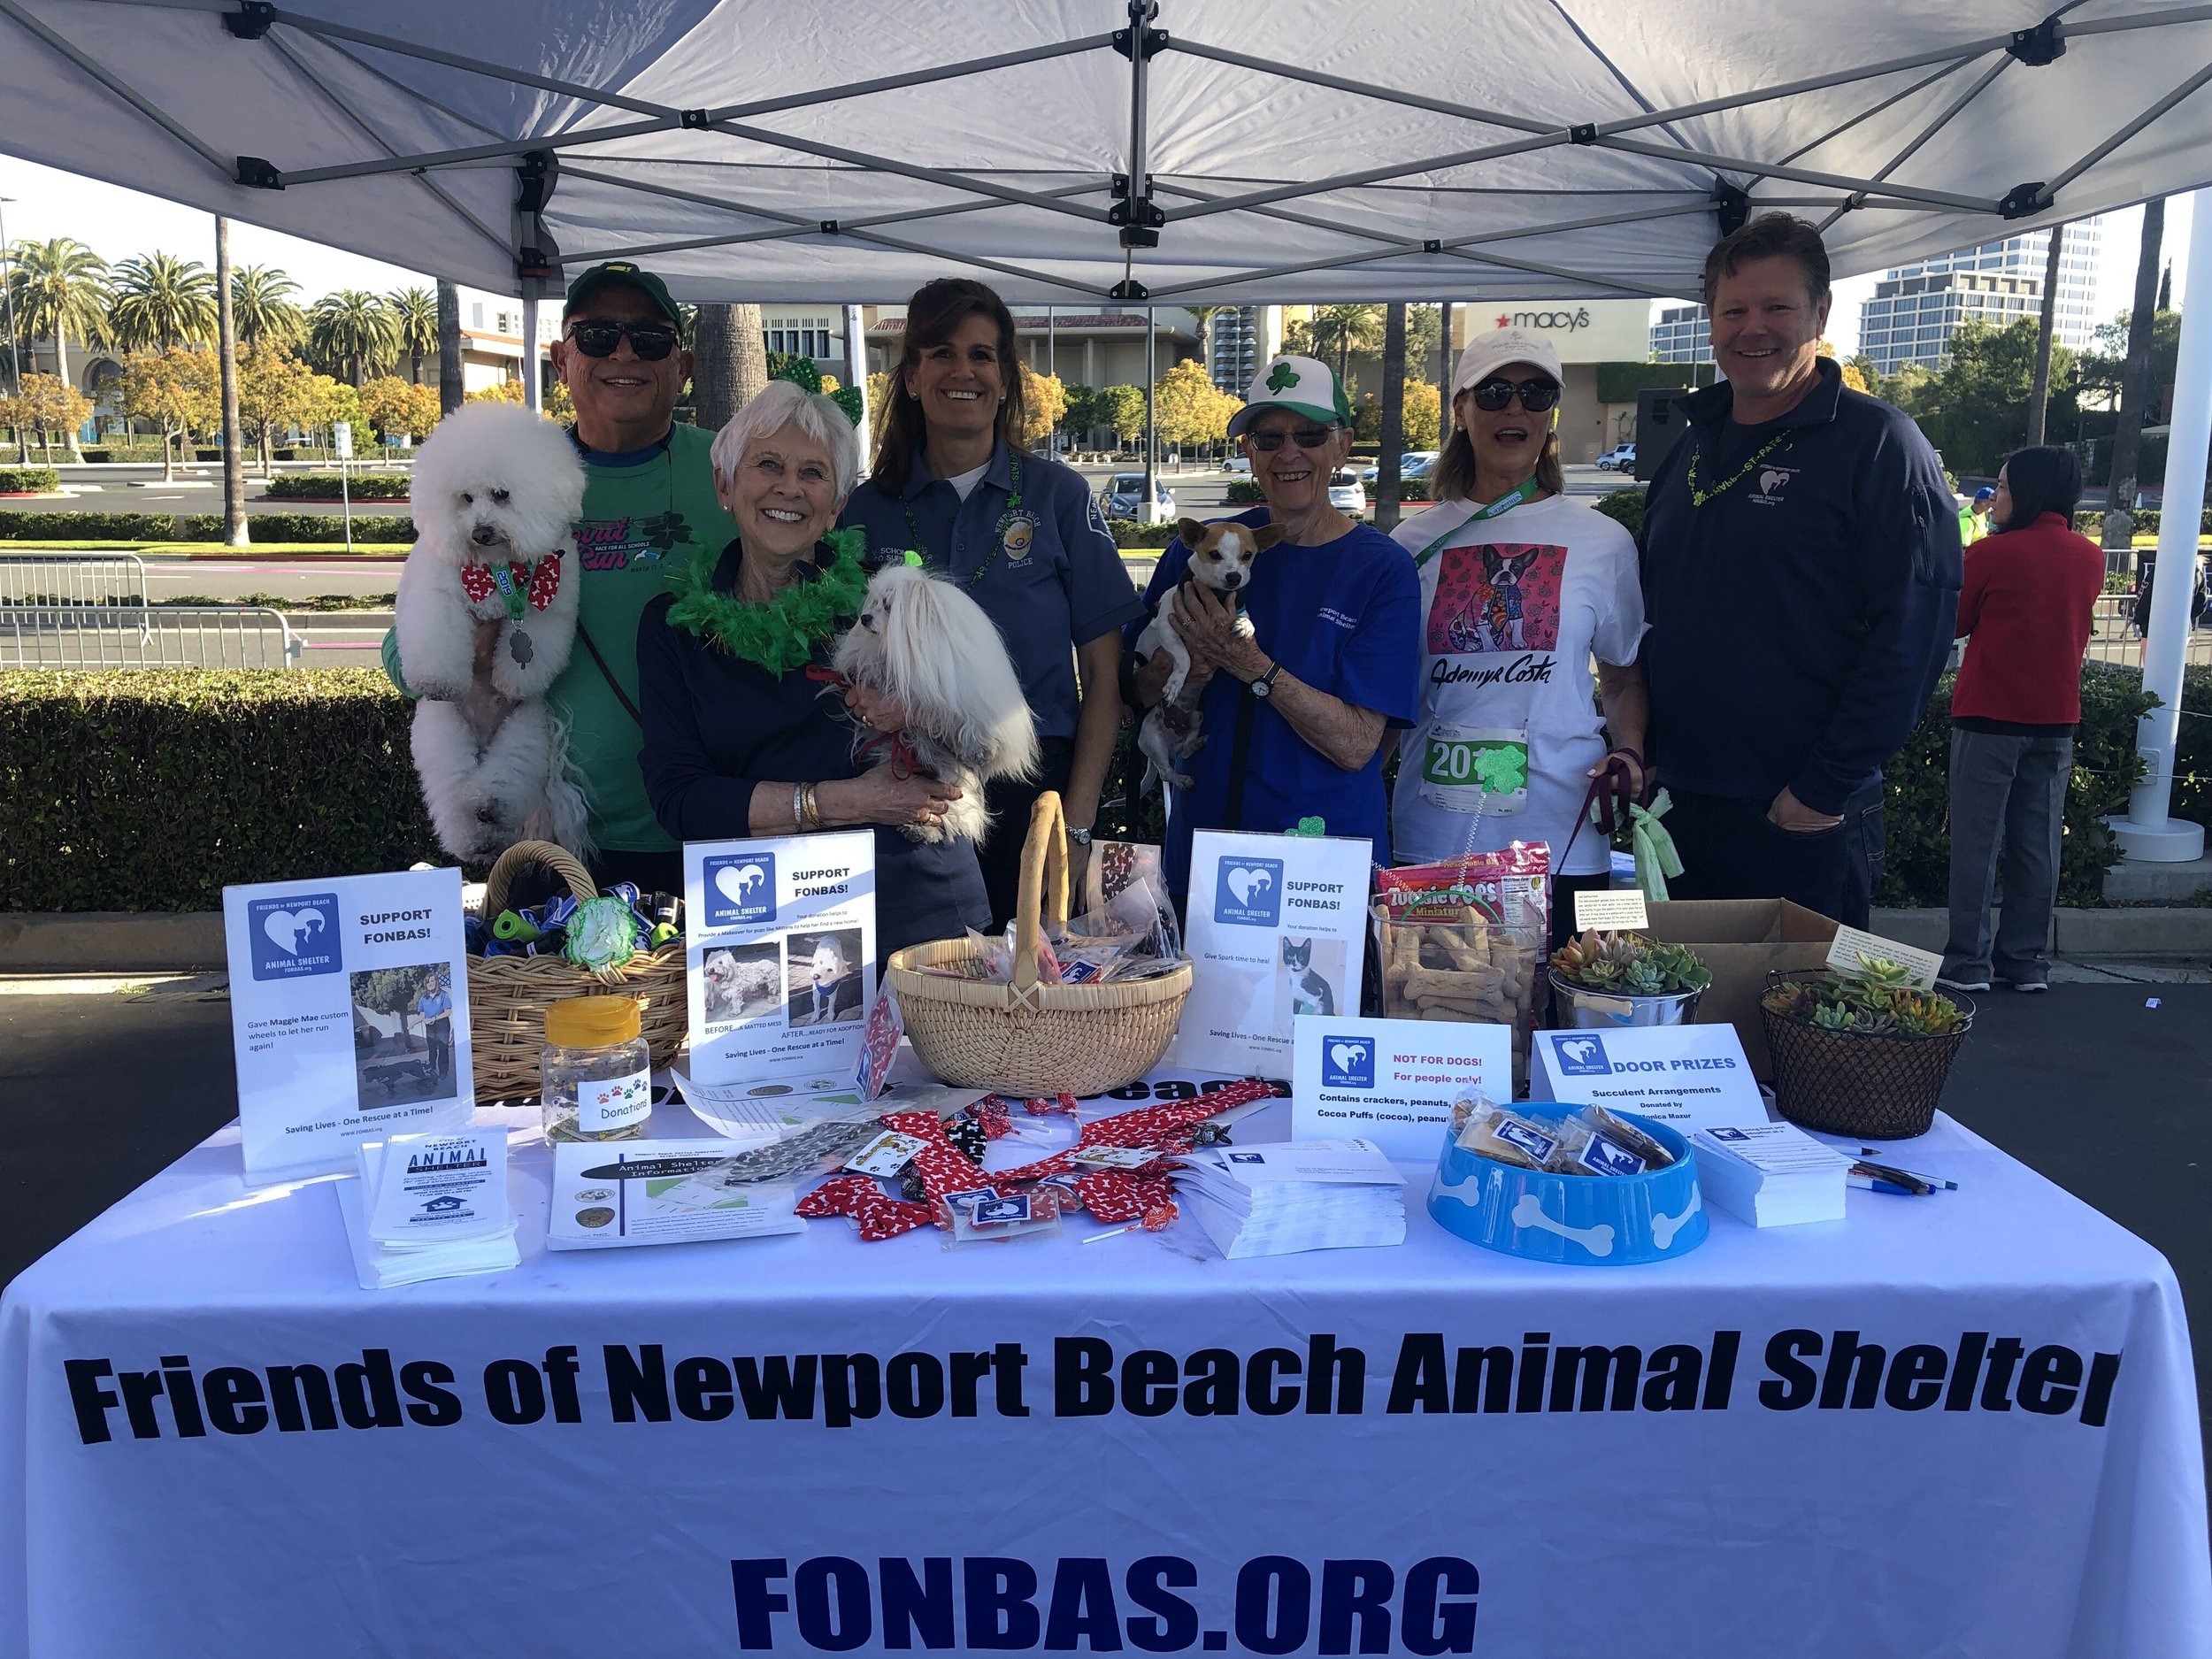 friends of newport beach anicmal shelter booth - Copy.jpeg